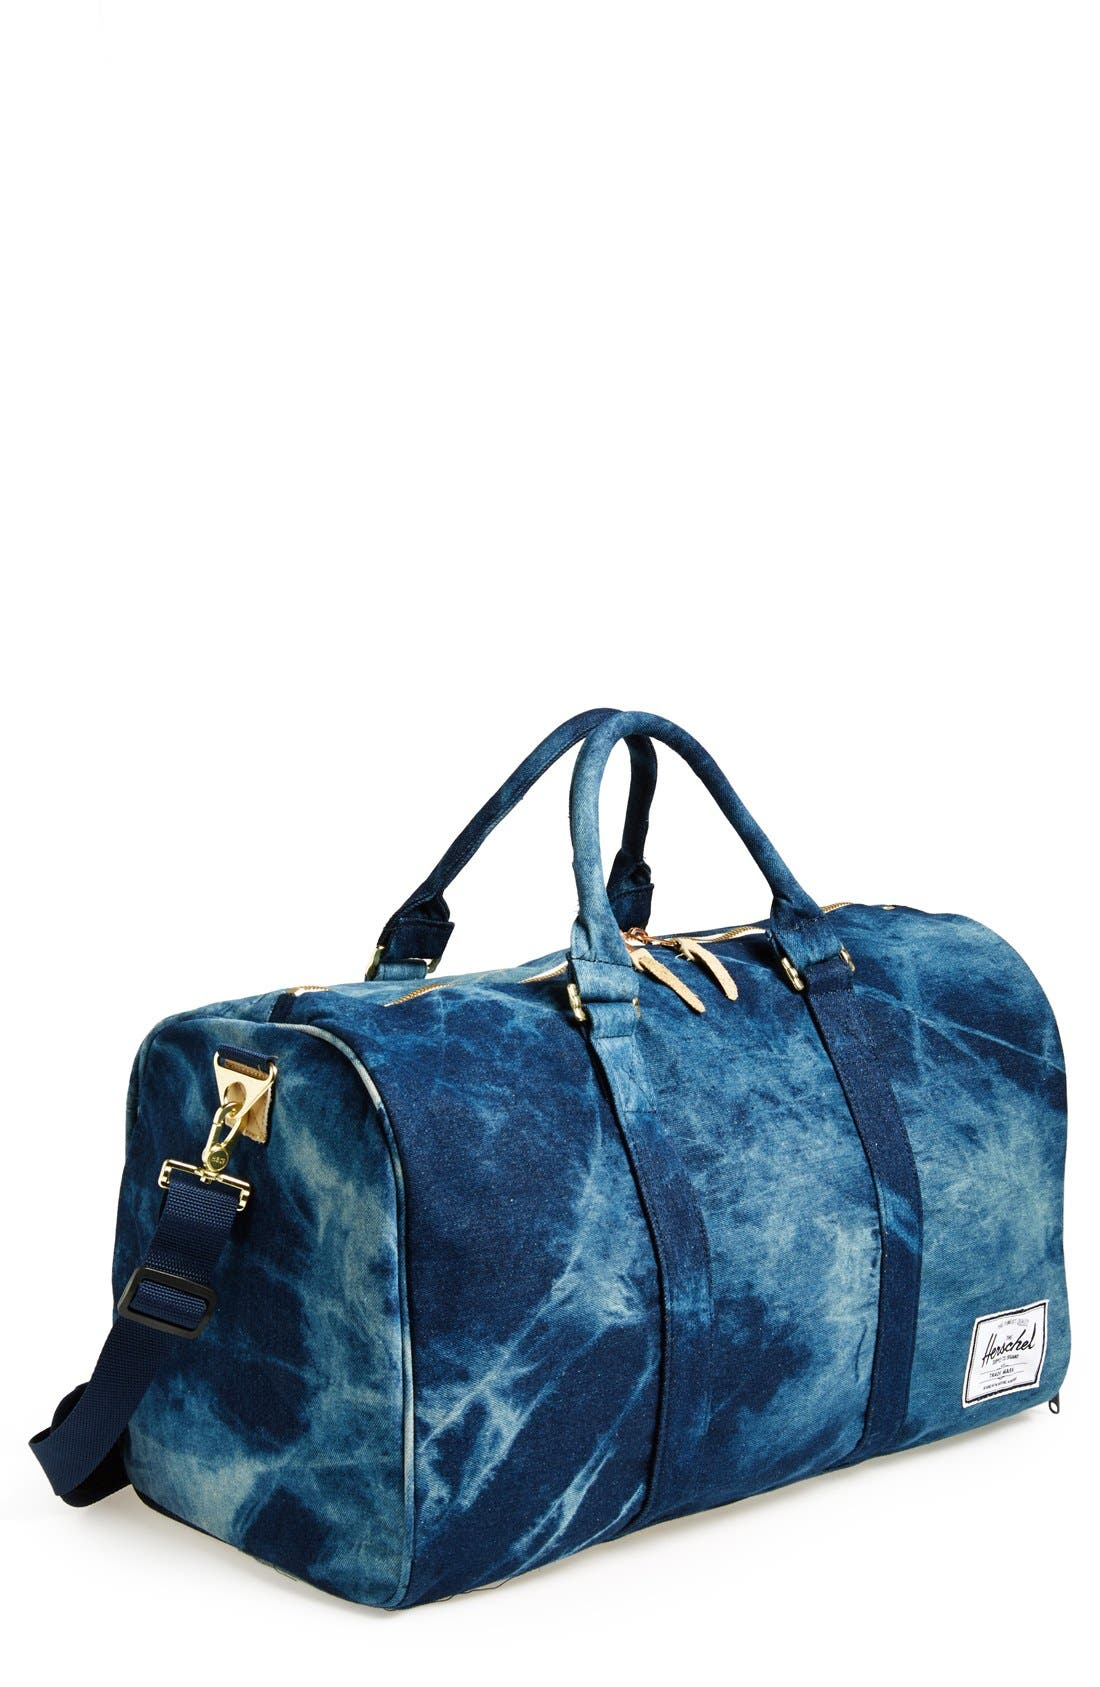 Main Image - Herschel Supply Co. 'Novel' Duffel Bag